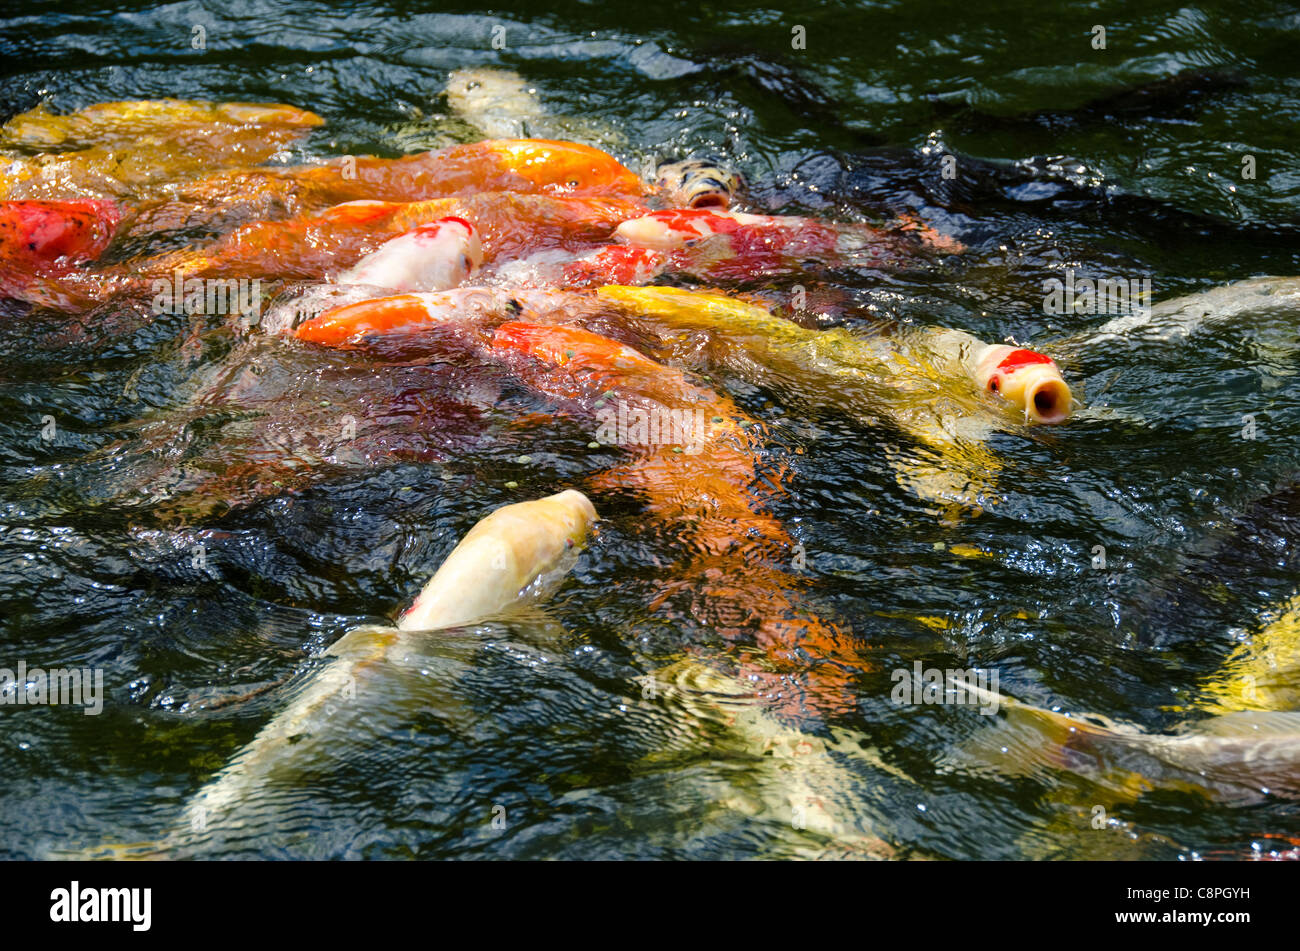 Koi pond pool stock photos koi pond pool stock images for Koi pool water